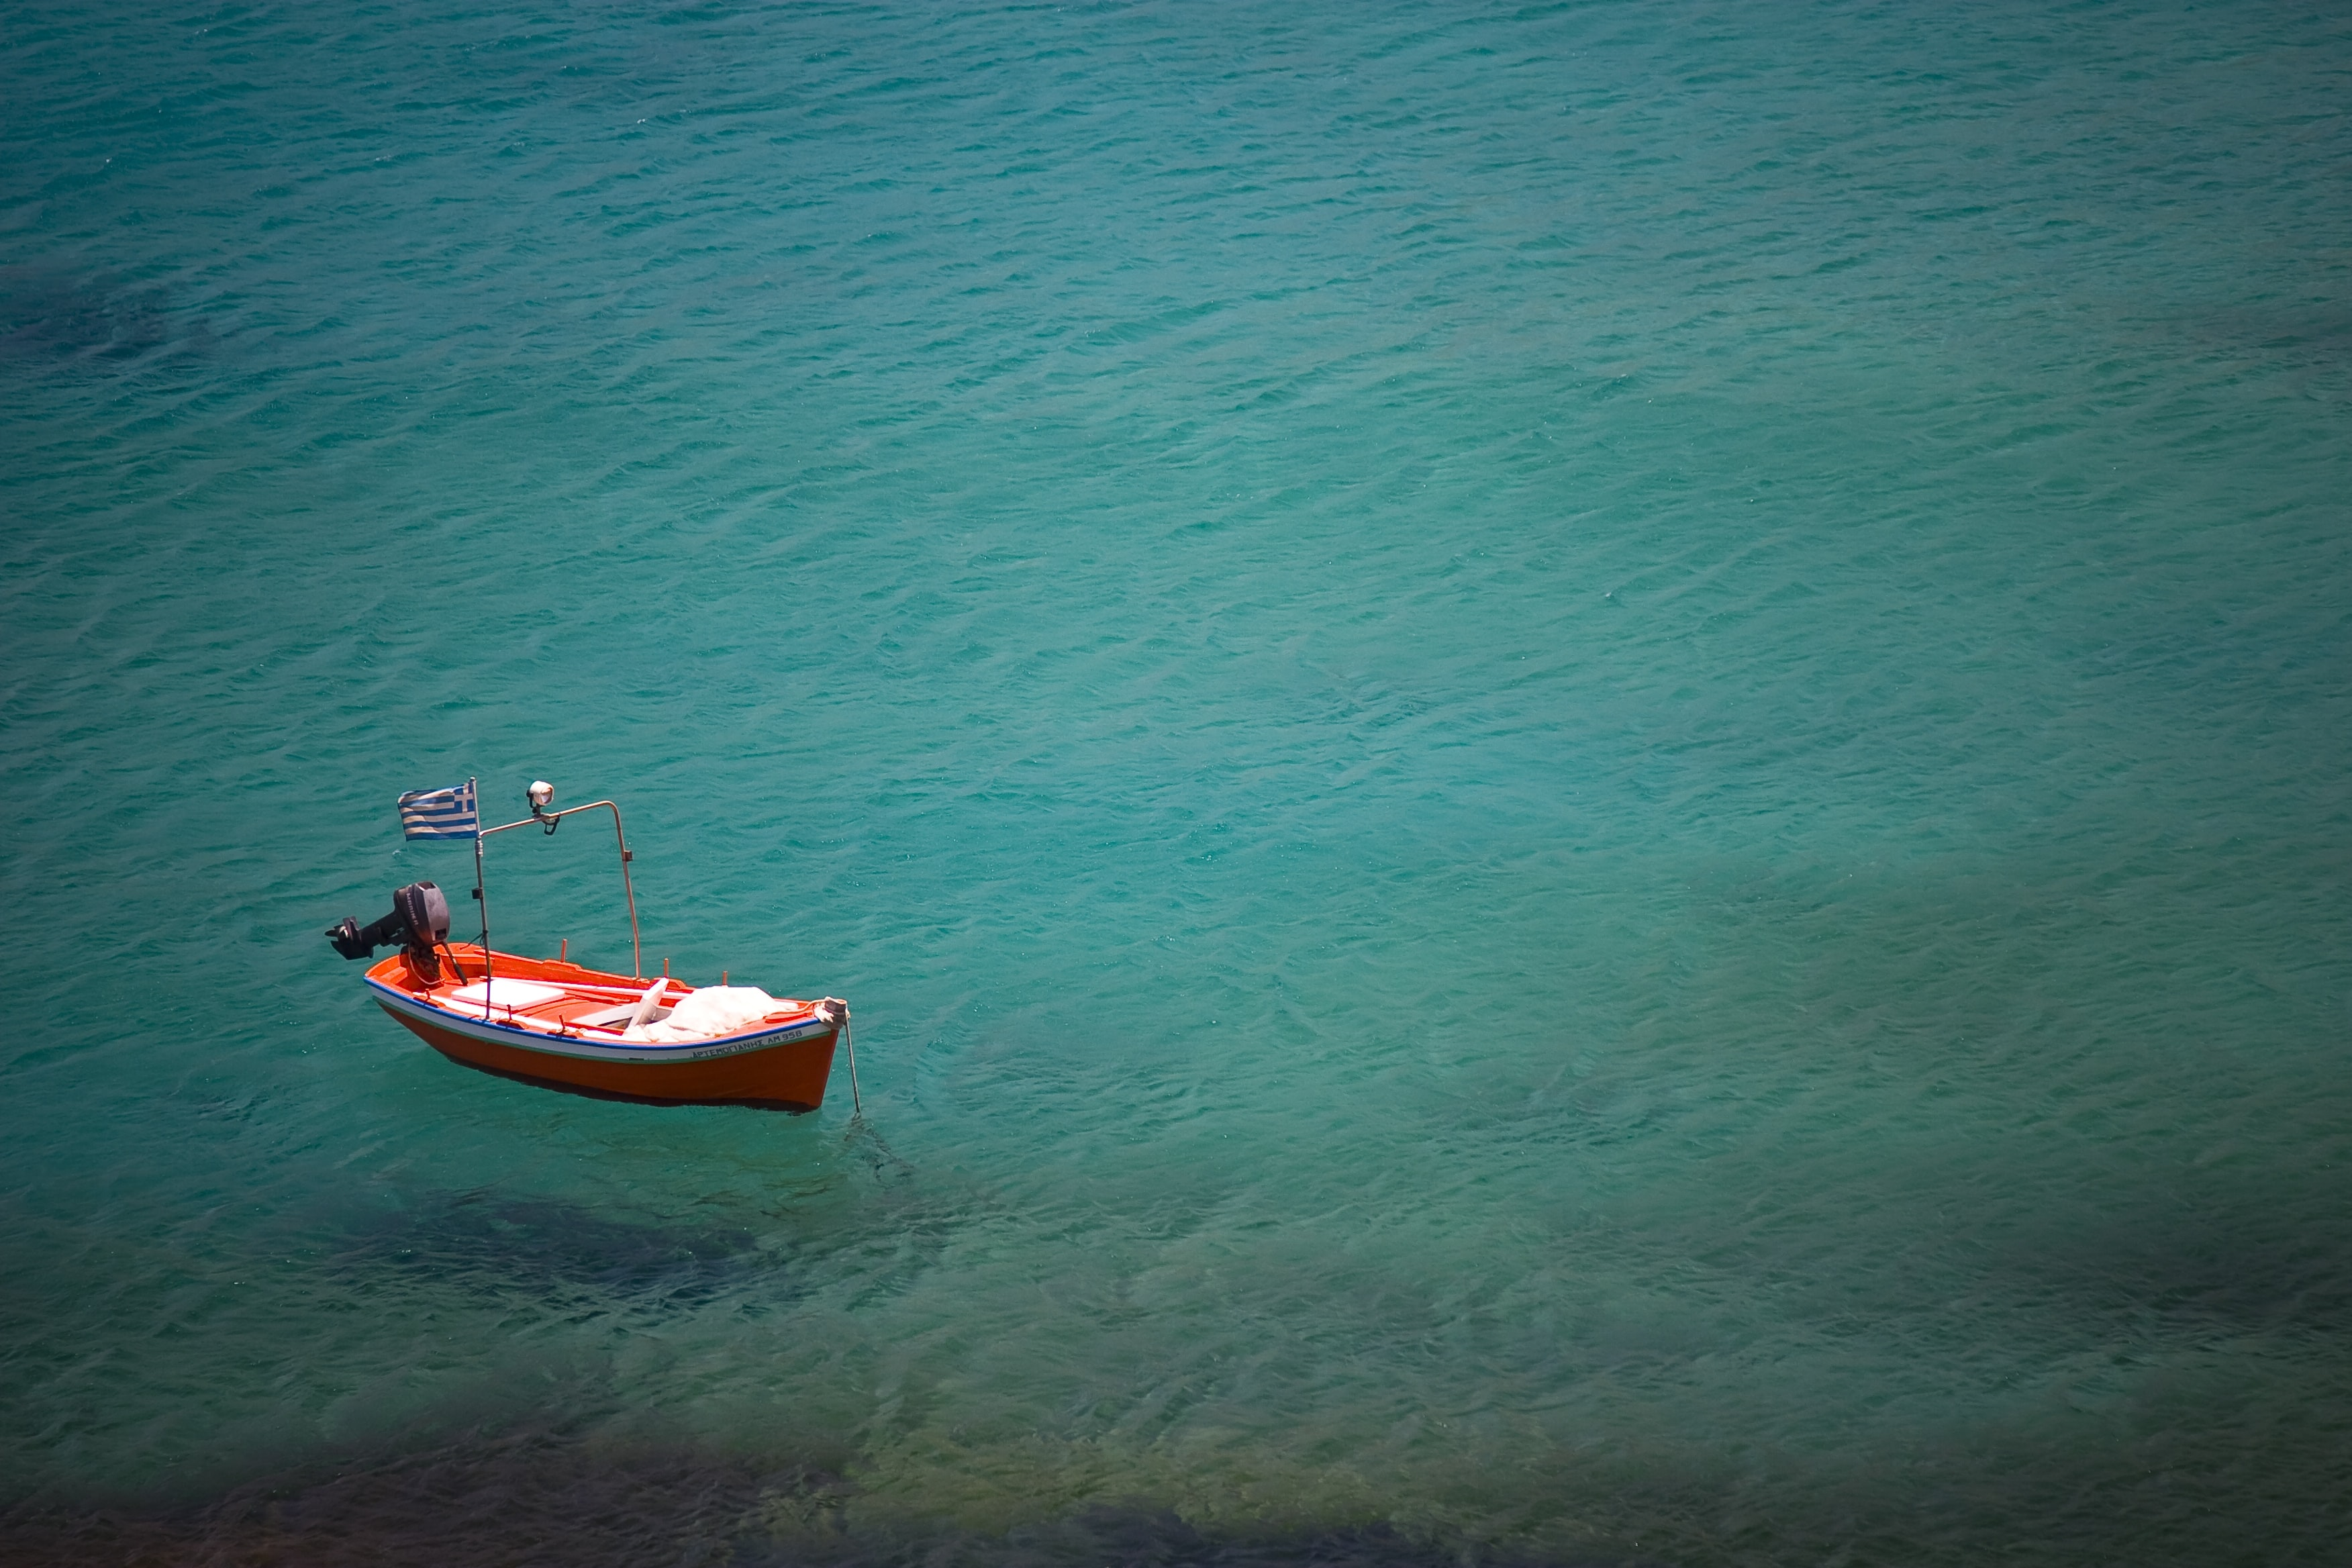 An orange boat with a Greek flag flying, floating on the sea